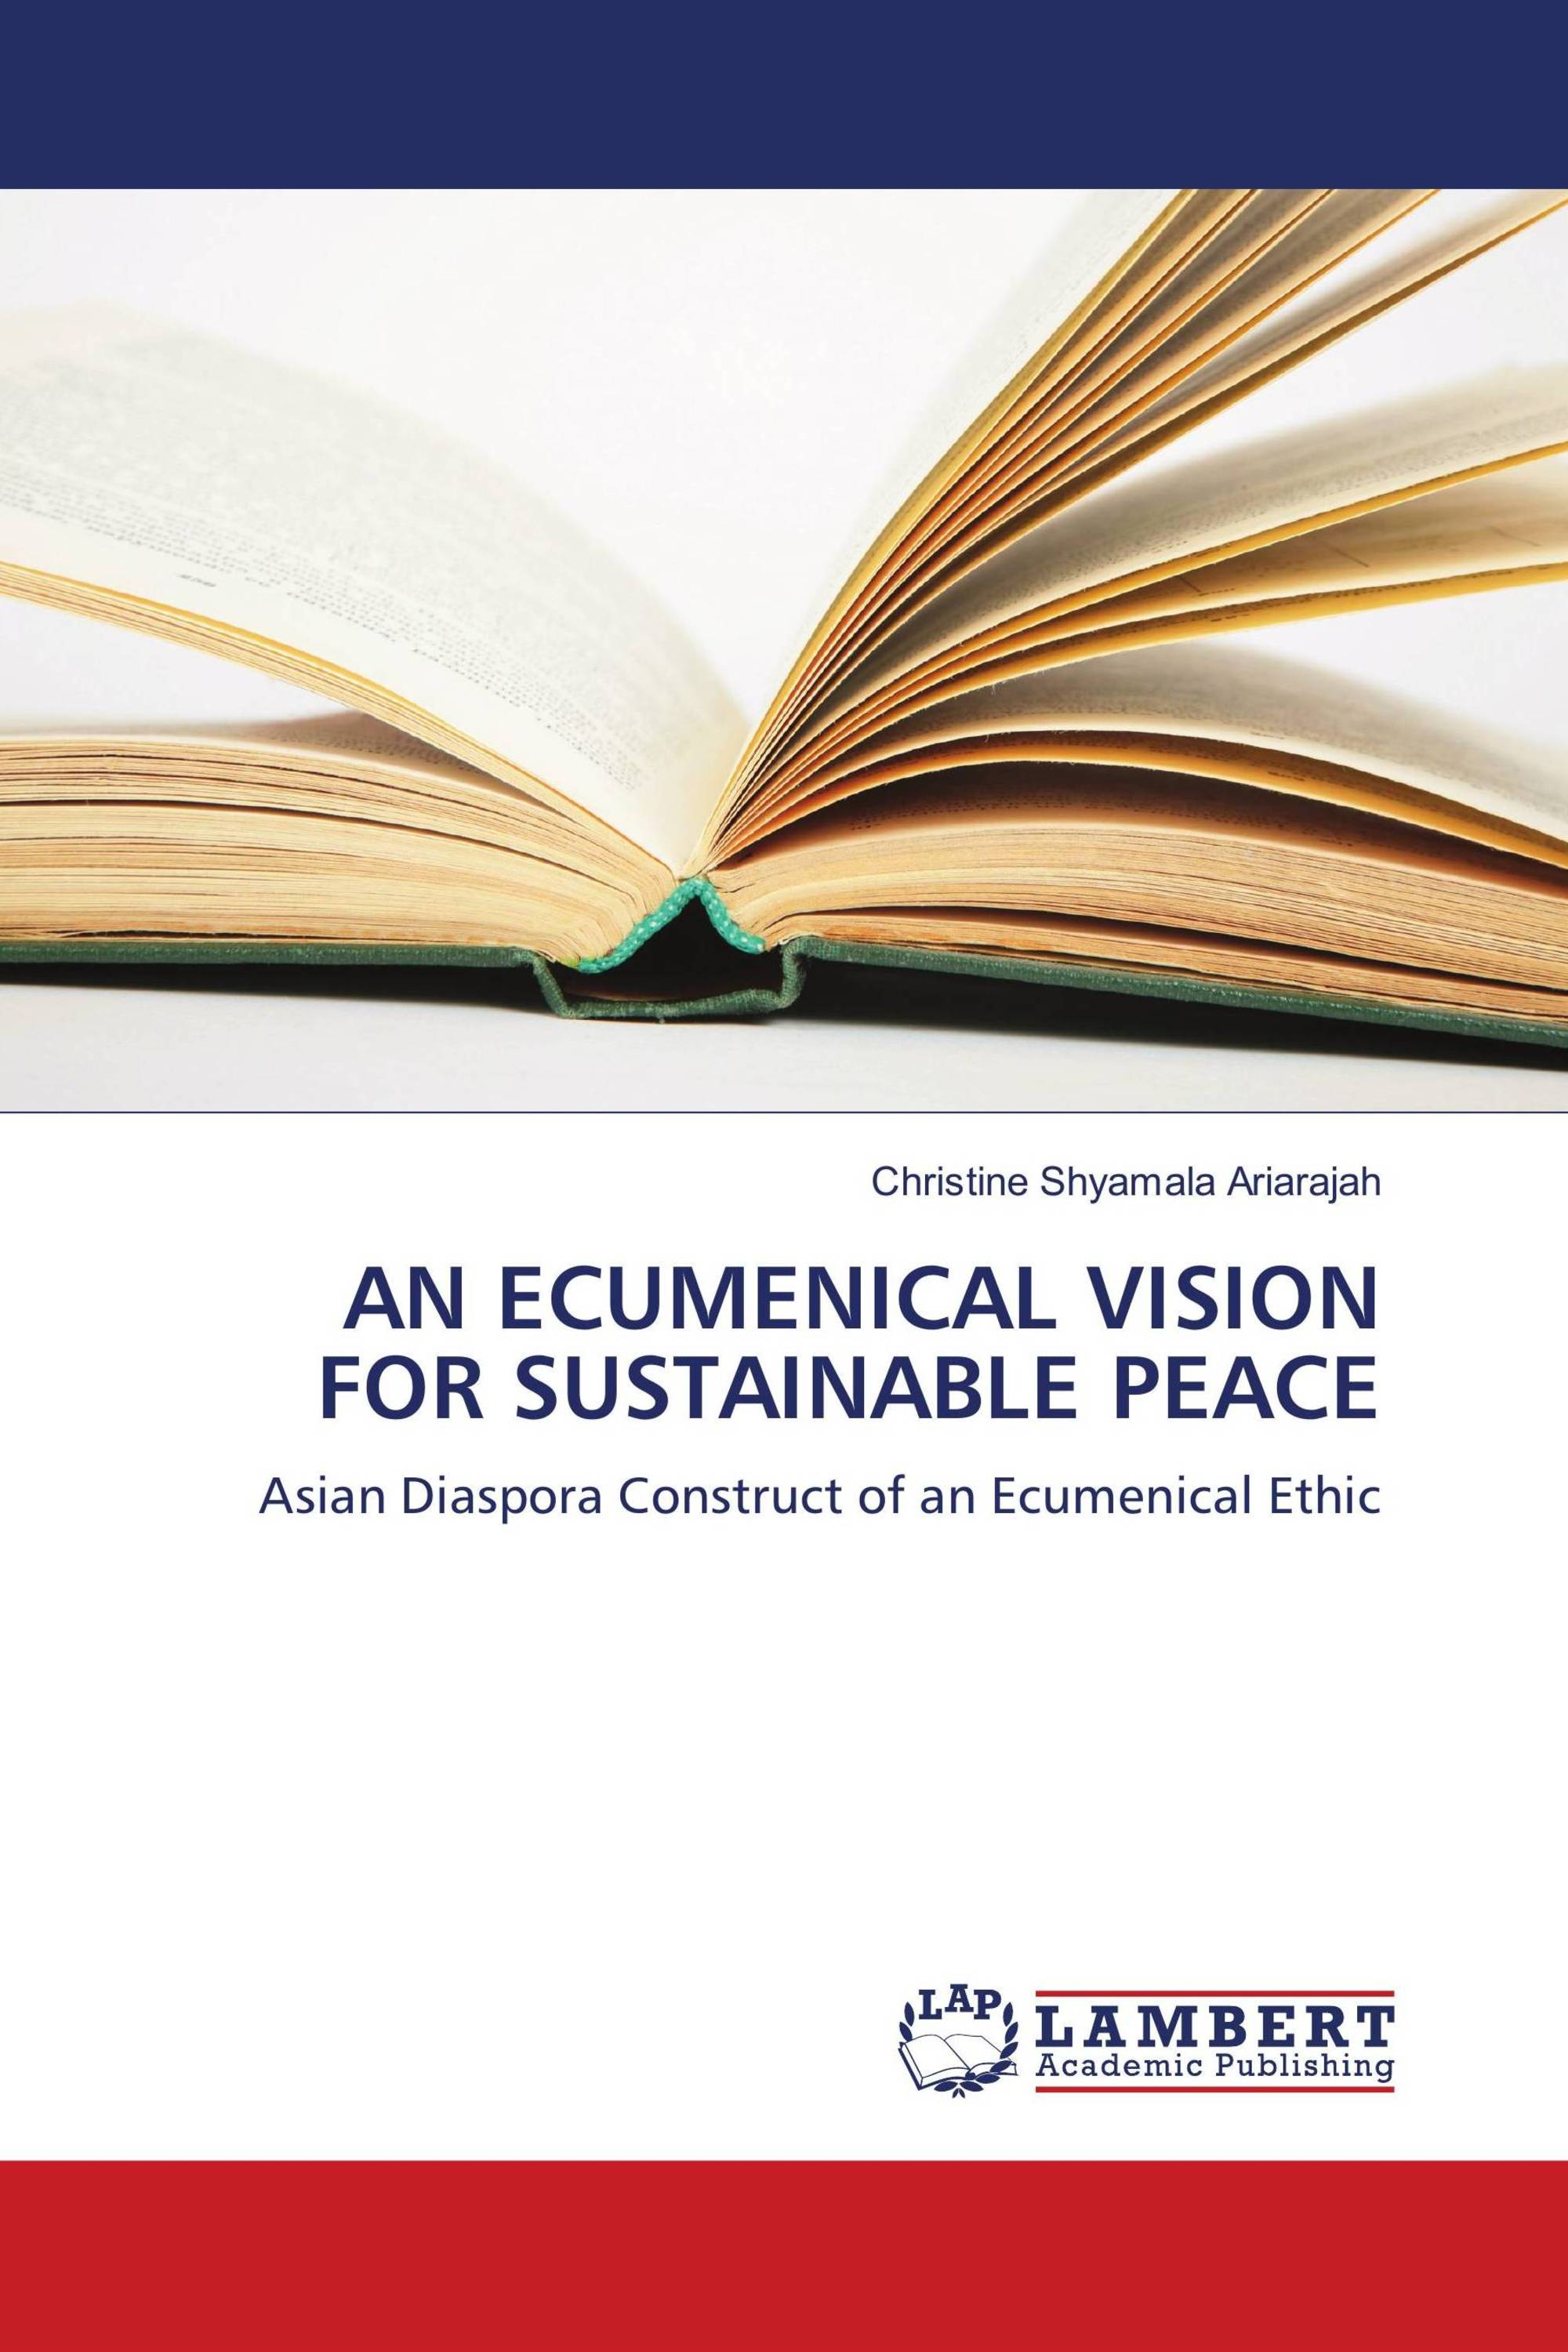 AN ECUMENICAL VISION FOR SUSTAINABLE PEACE